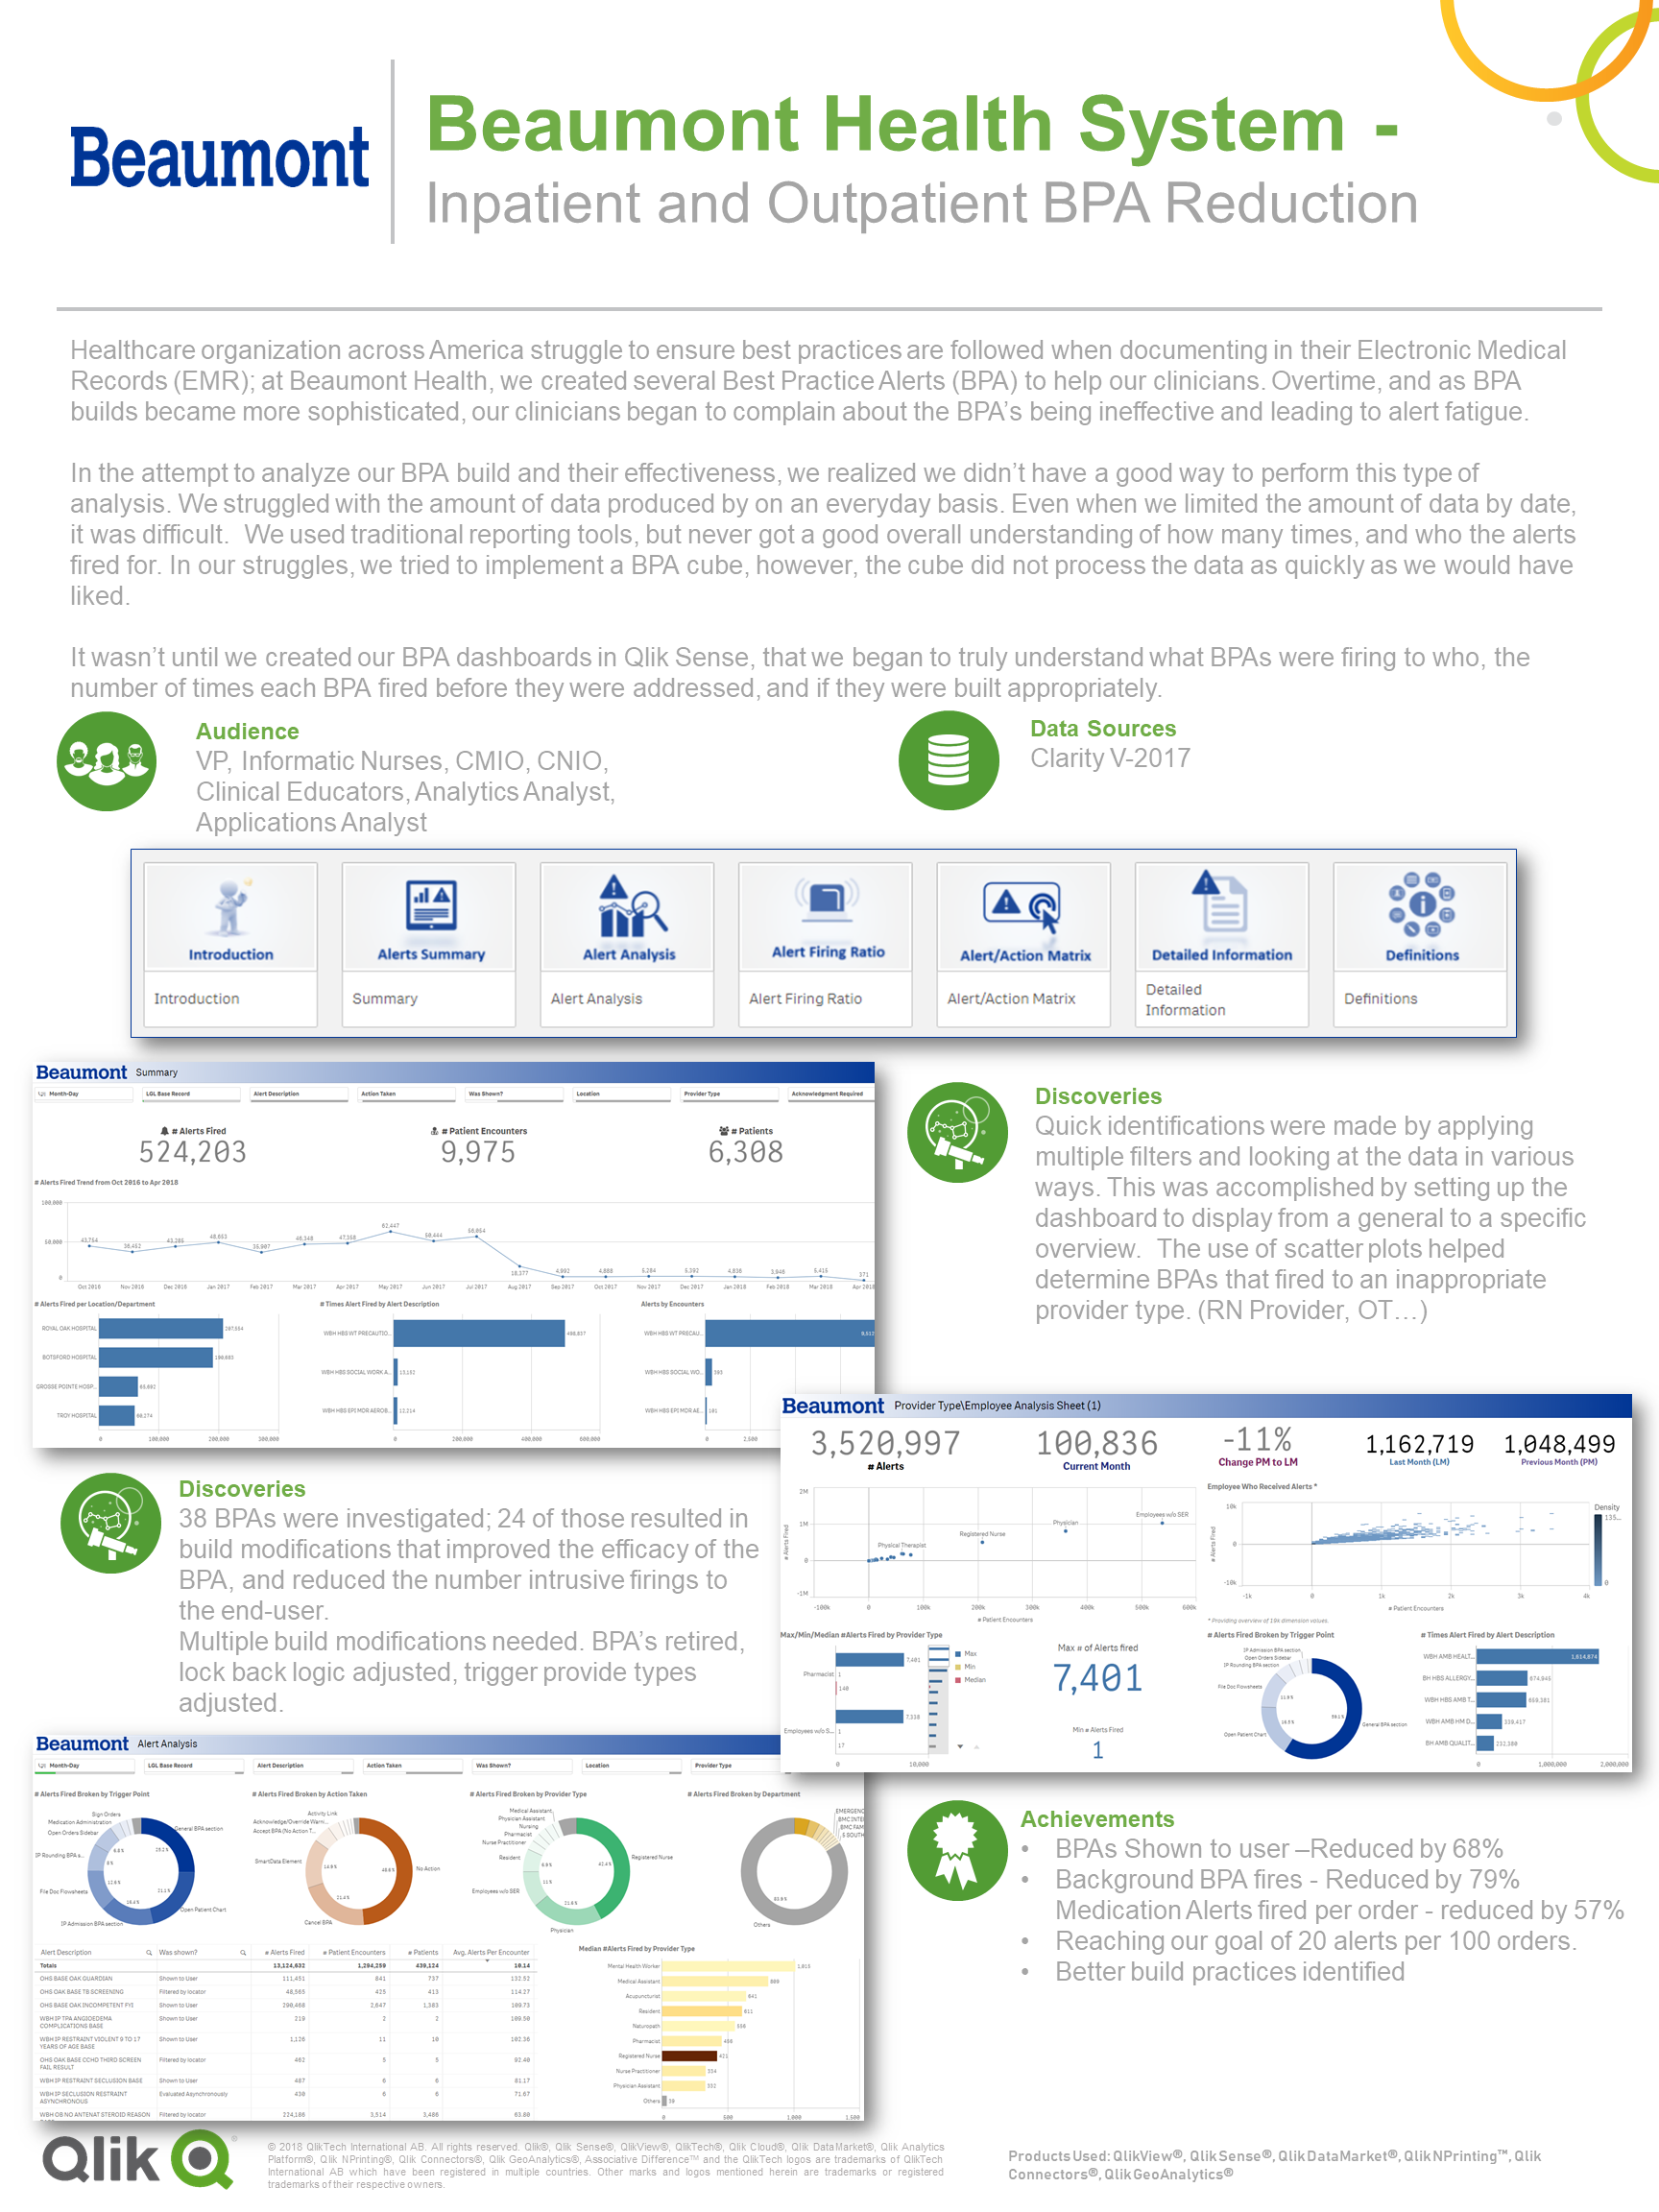 8 Qonnections Healthcare Poster - Beaumont - Best Practice Alerts BPA Reduction.png